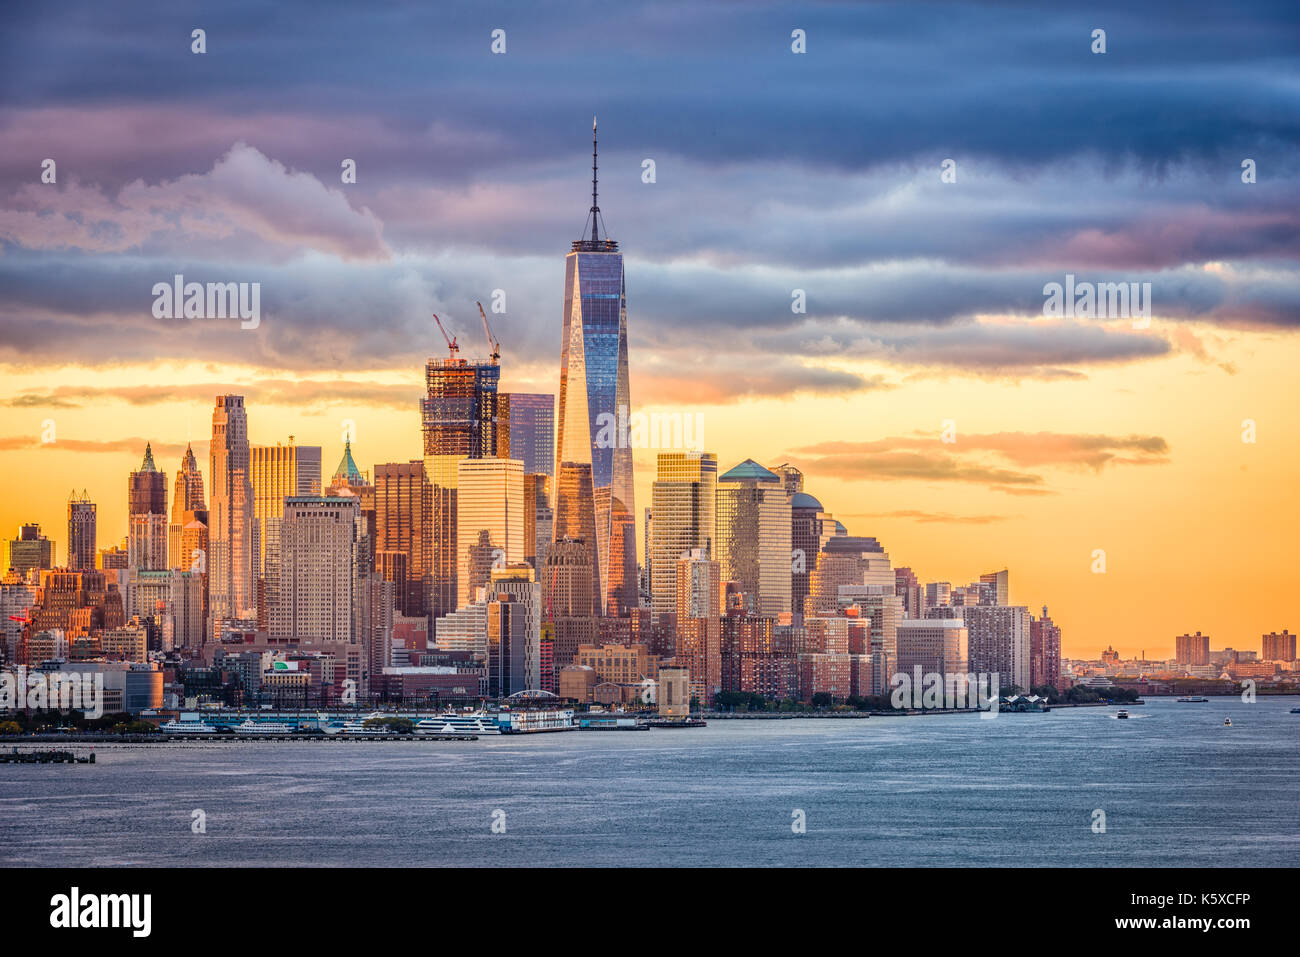 New York City financial district on the Hudson River at dawn. - Stock Image